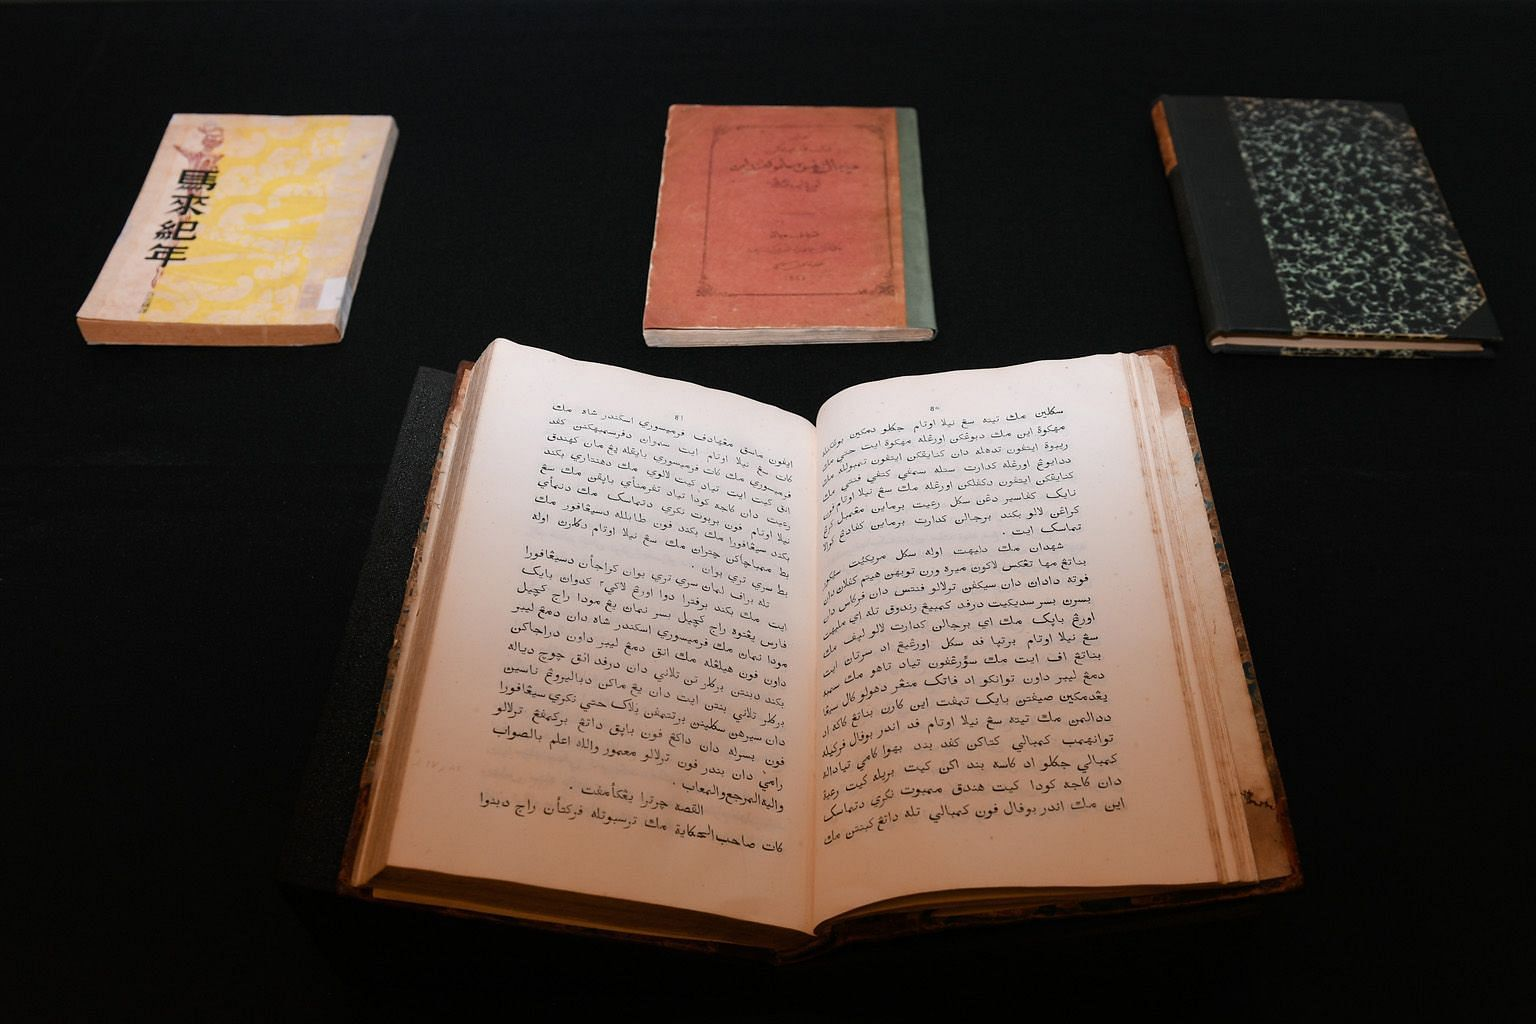 The Sejarah Melayu, or Malay Annals, was printed in Singapore in the 1840s and edited by Munsyi Abdullah, a scribe for Sir Stamford Raffles. There are only five known copies of the book that exist in public institutions today - two in the United Stat